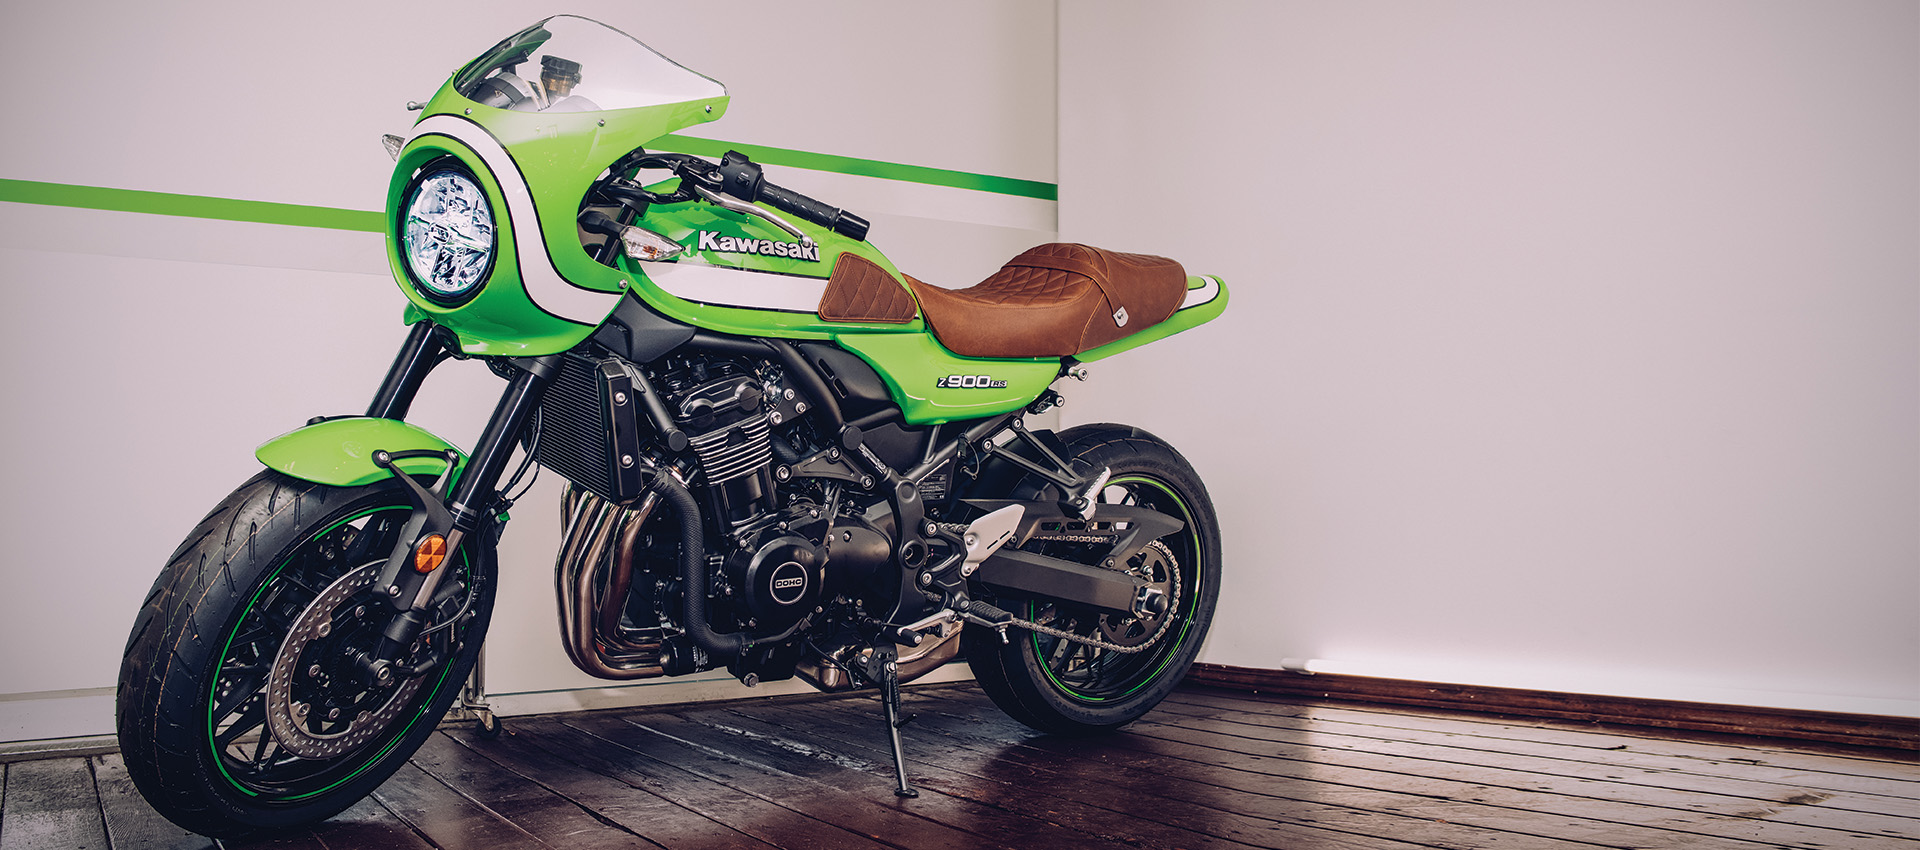 Luimoto - Designer Motorcycle Seat Covers and More